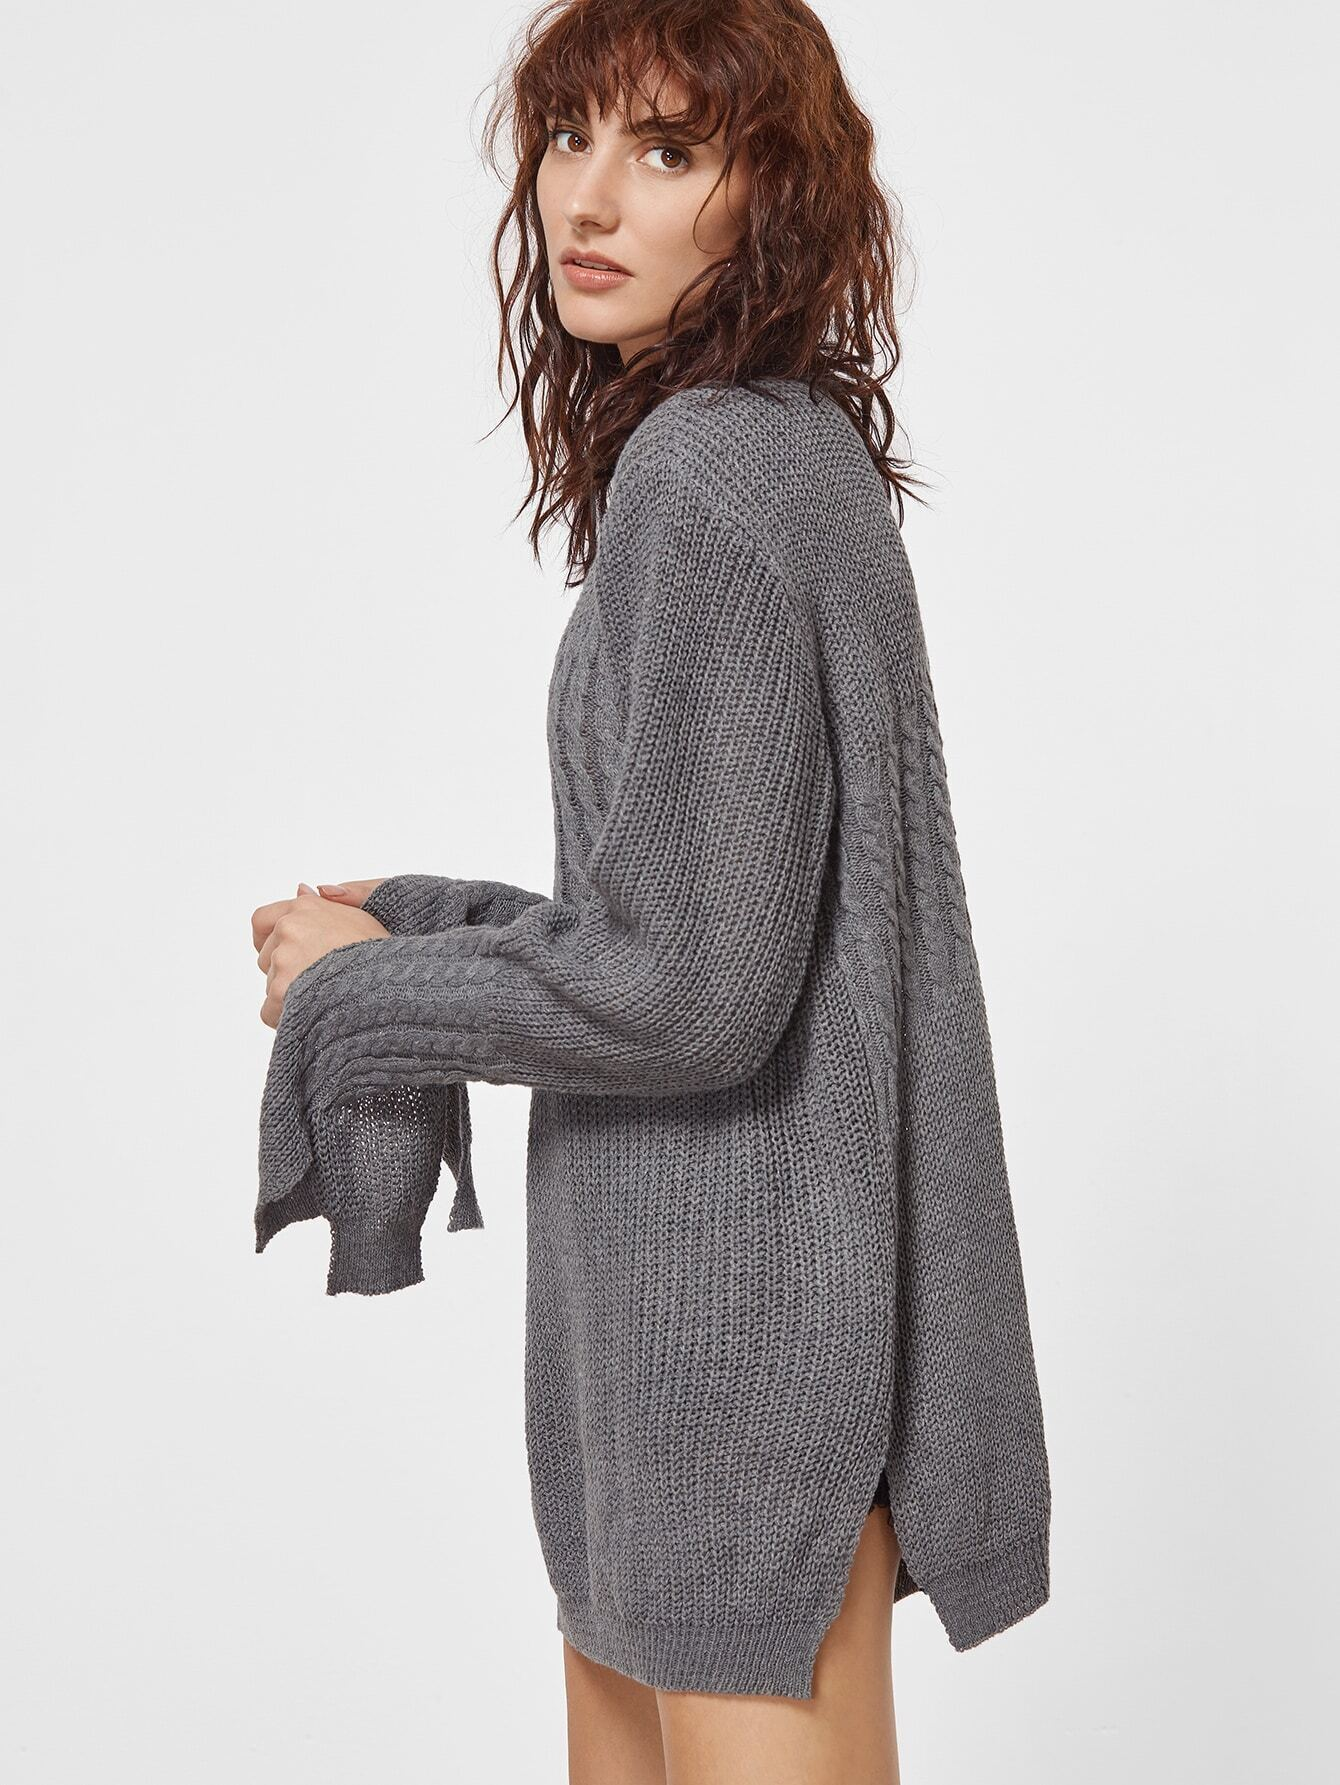 Dark Grey Slit Side Cable Knit Sweater -SheIn(Sheinside)